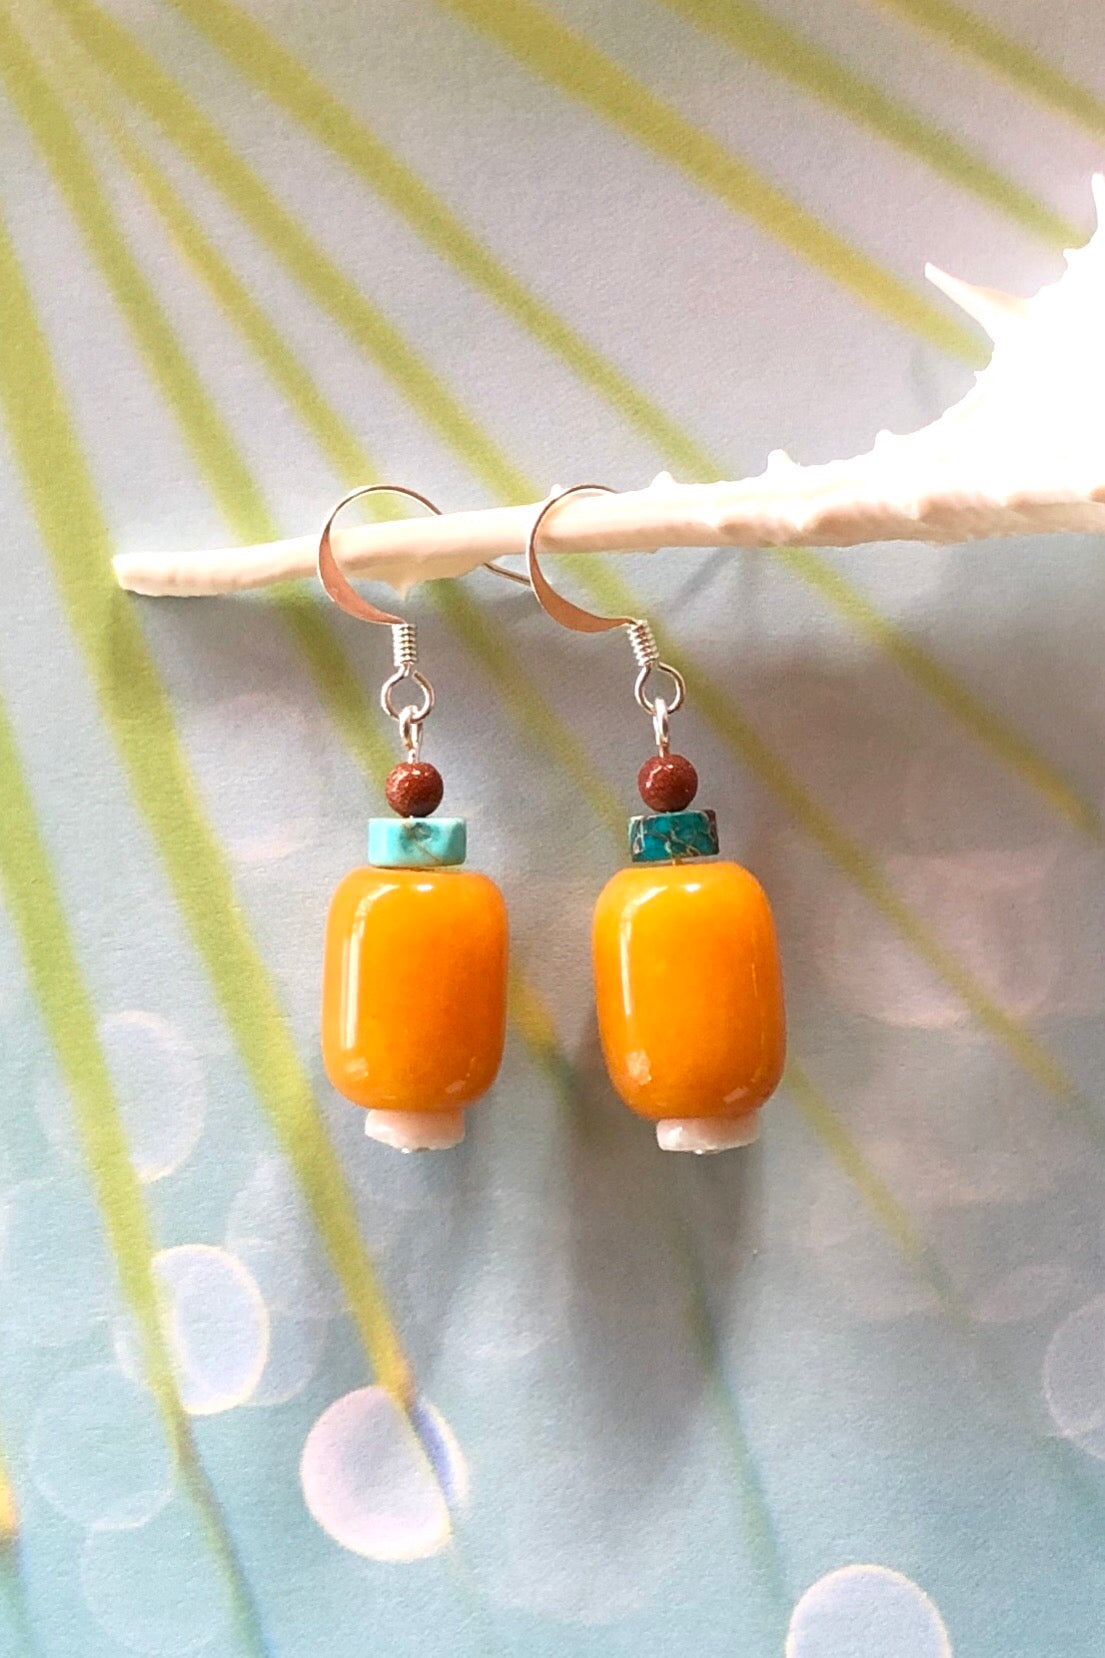 Samara May Lantern earrings are handmade drop style earrings featuring turquoise howlite, shell bead, sunstone, quartz and those stones are village cut.